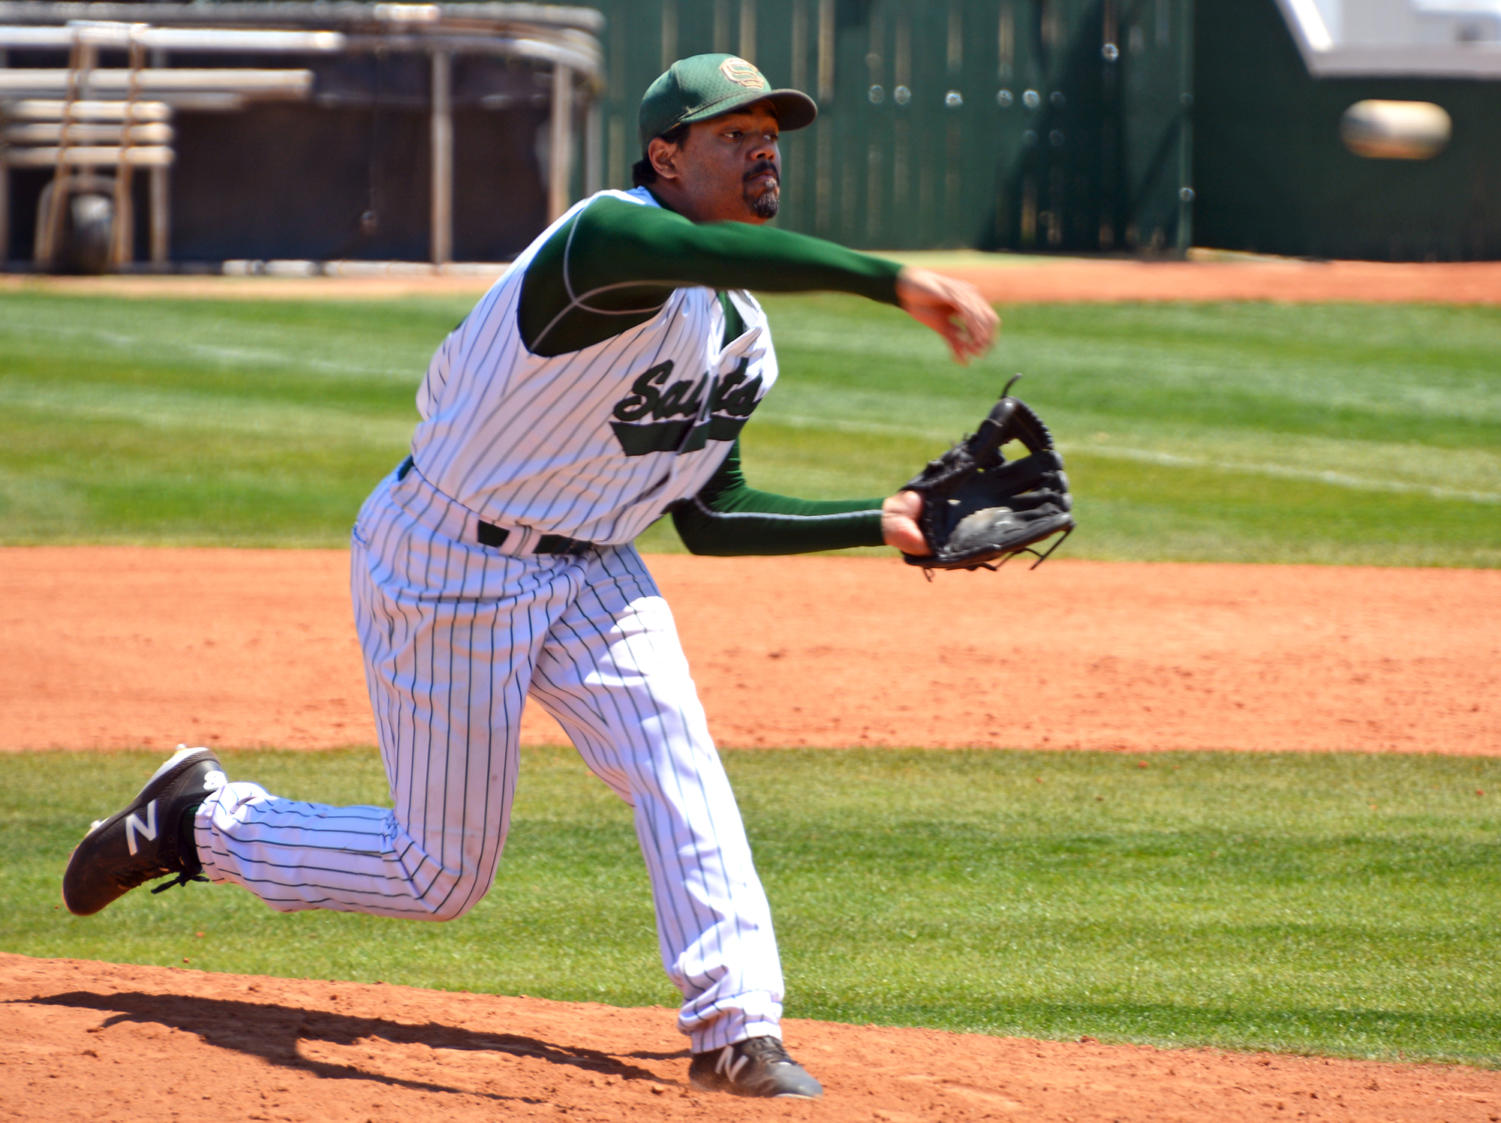 Jordan Pepper, sophomore pitcher, fires on in to the plate. The Saints played their way into the Region VI tournament by defeating Fort Scott in a best of three game series. (file photo)